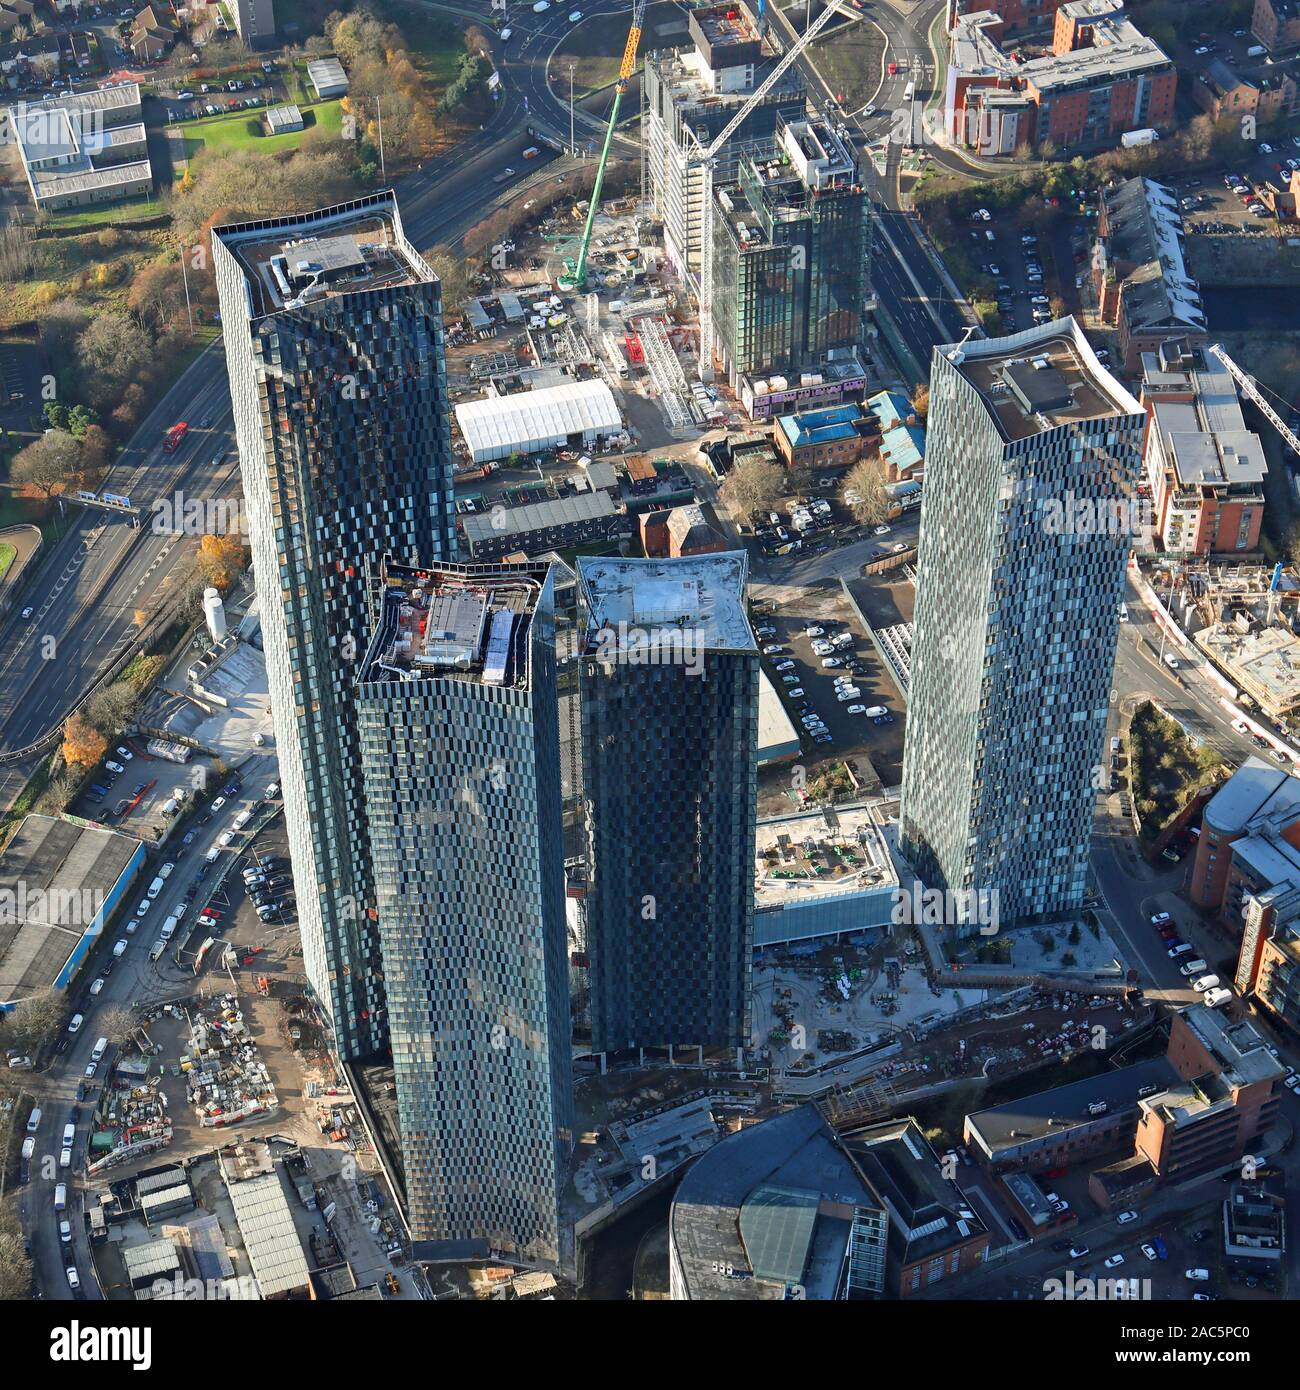 aerial view of Manchester city centre with the Deansgate Square, or Owen Street skyscrapers development, prominent Stock Photo